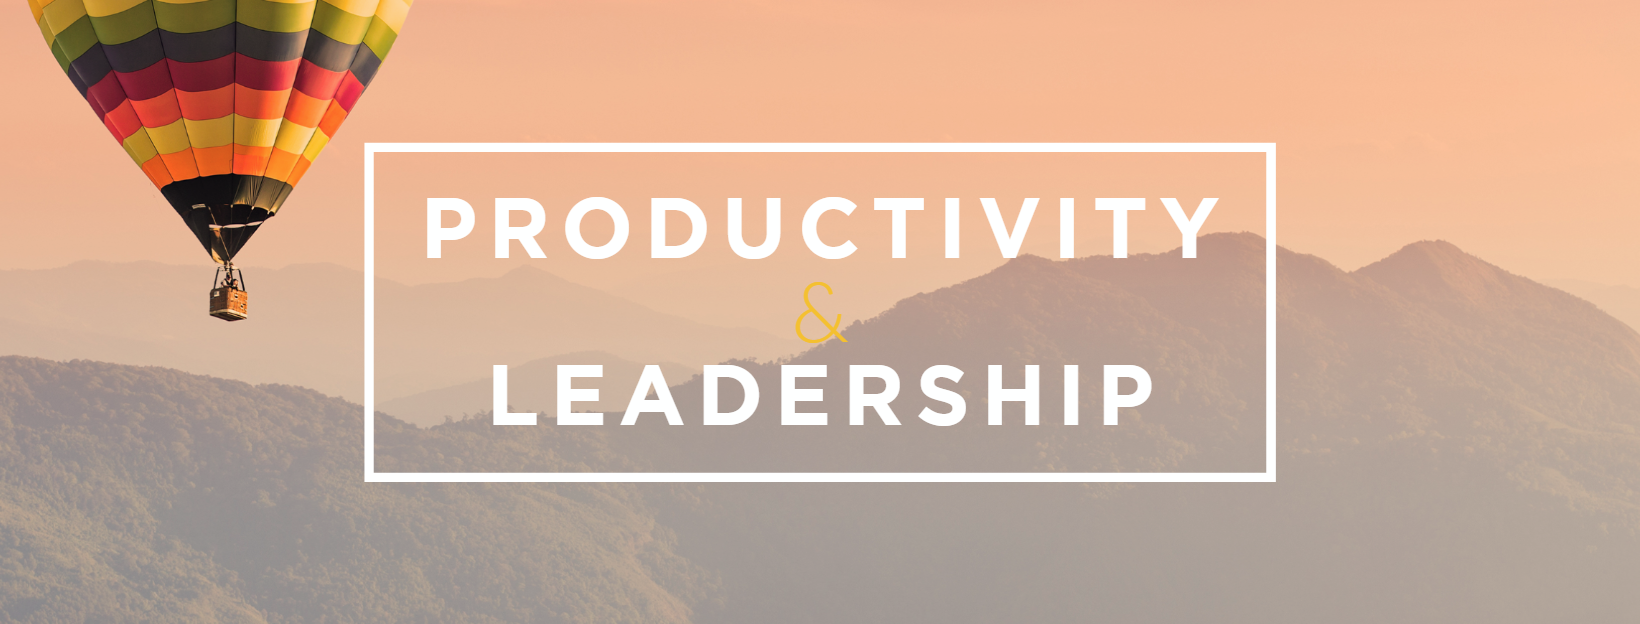 Productivity and leadership study - 20Twenty Business Course